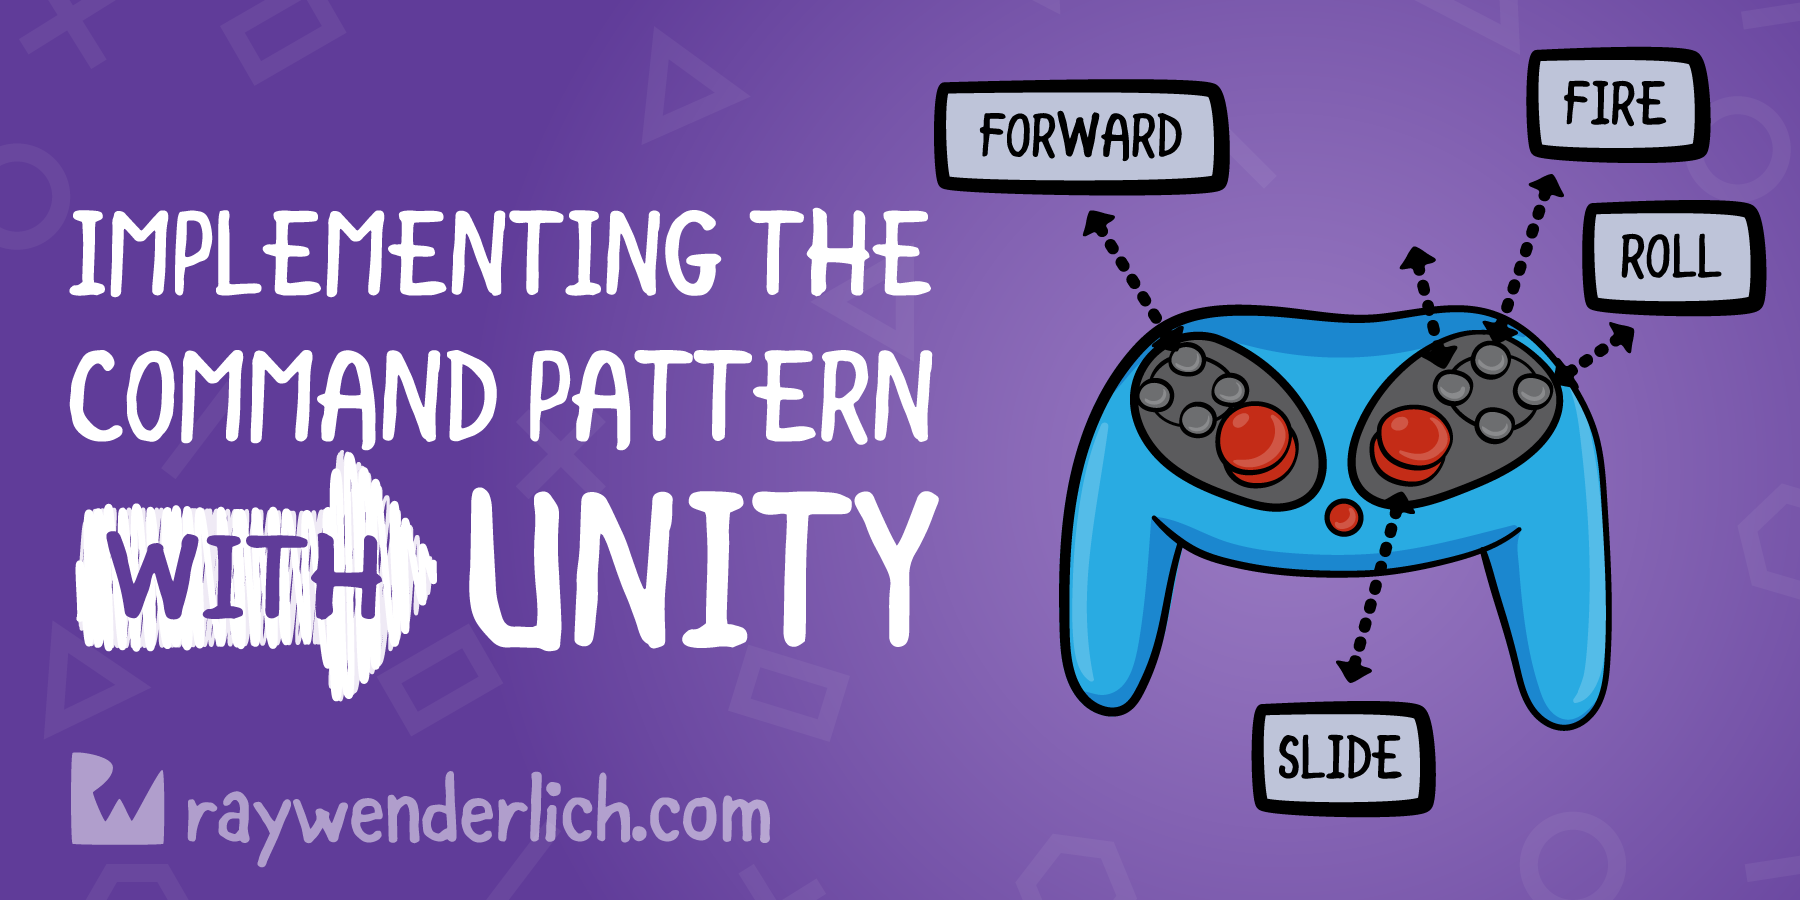 Implementing The Command Pattern In Unity | raywenderlich com